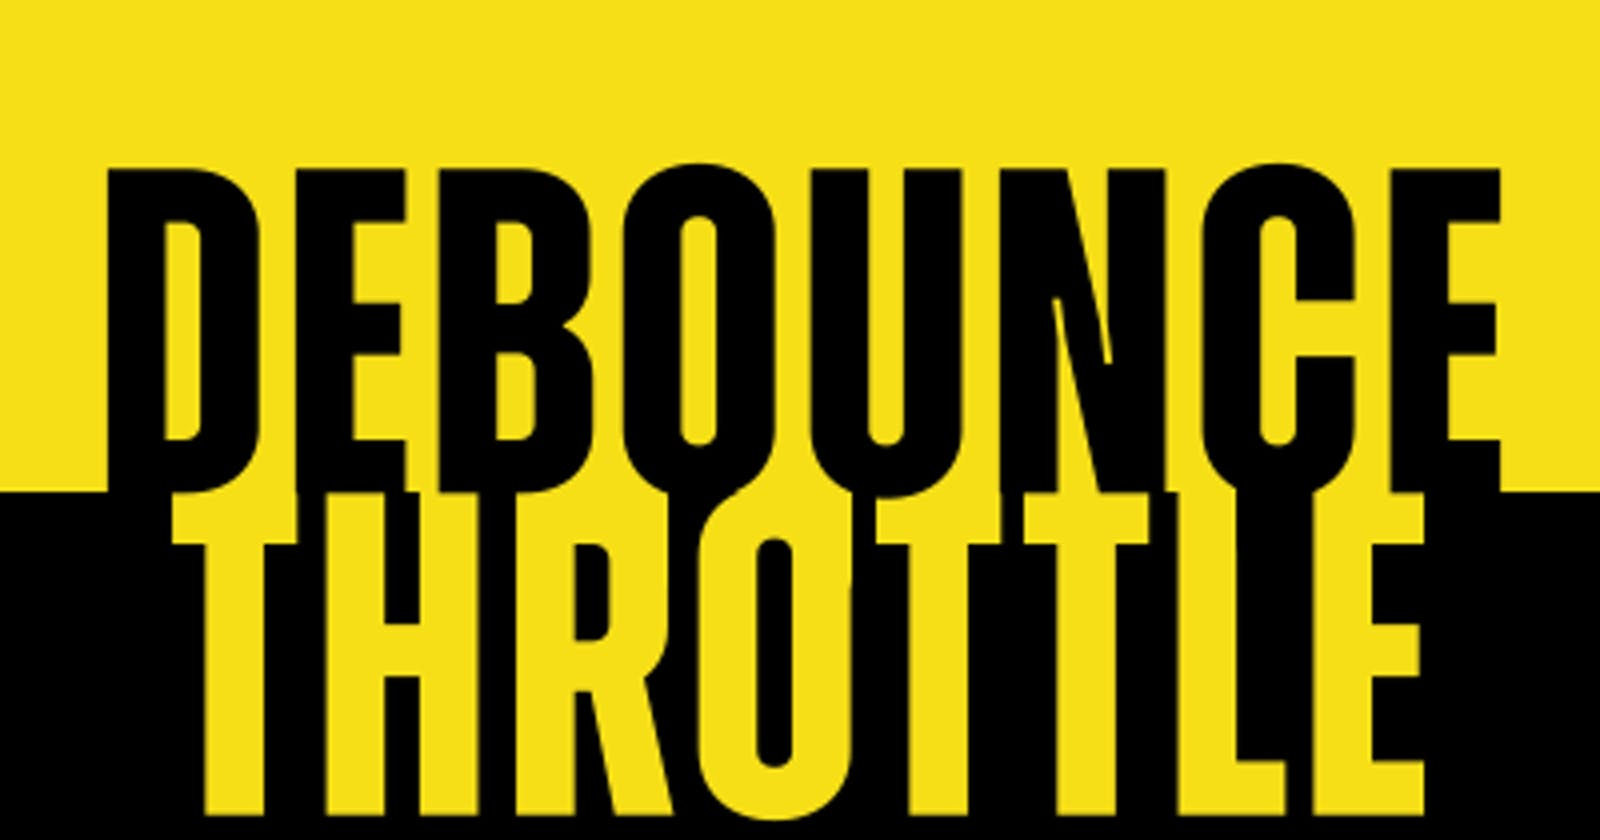 All you need to know about Debouncing and Throttling in JavaScript